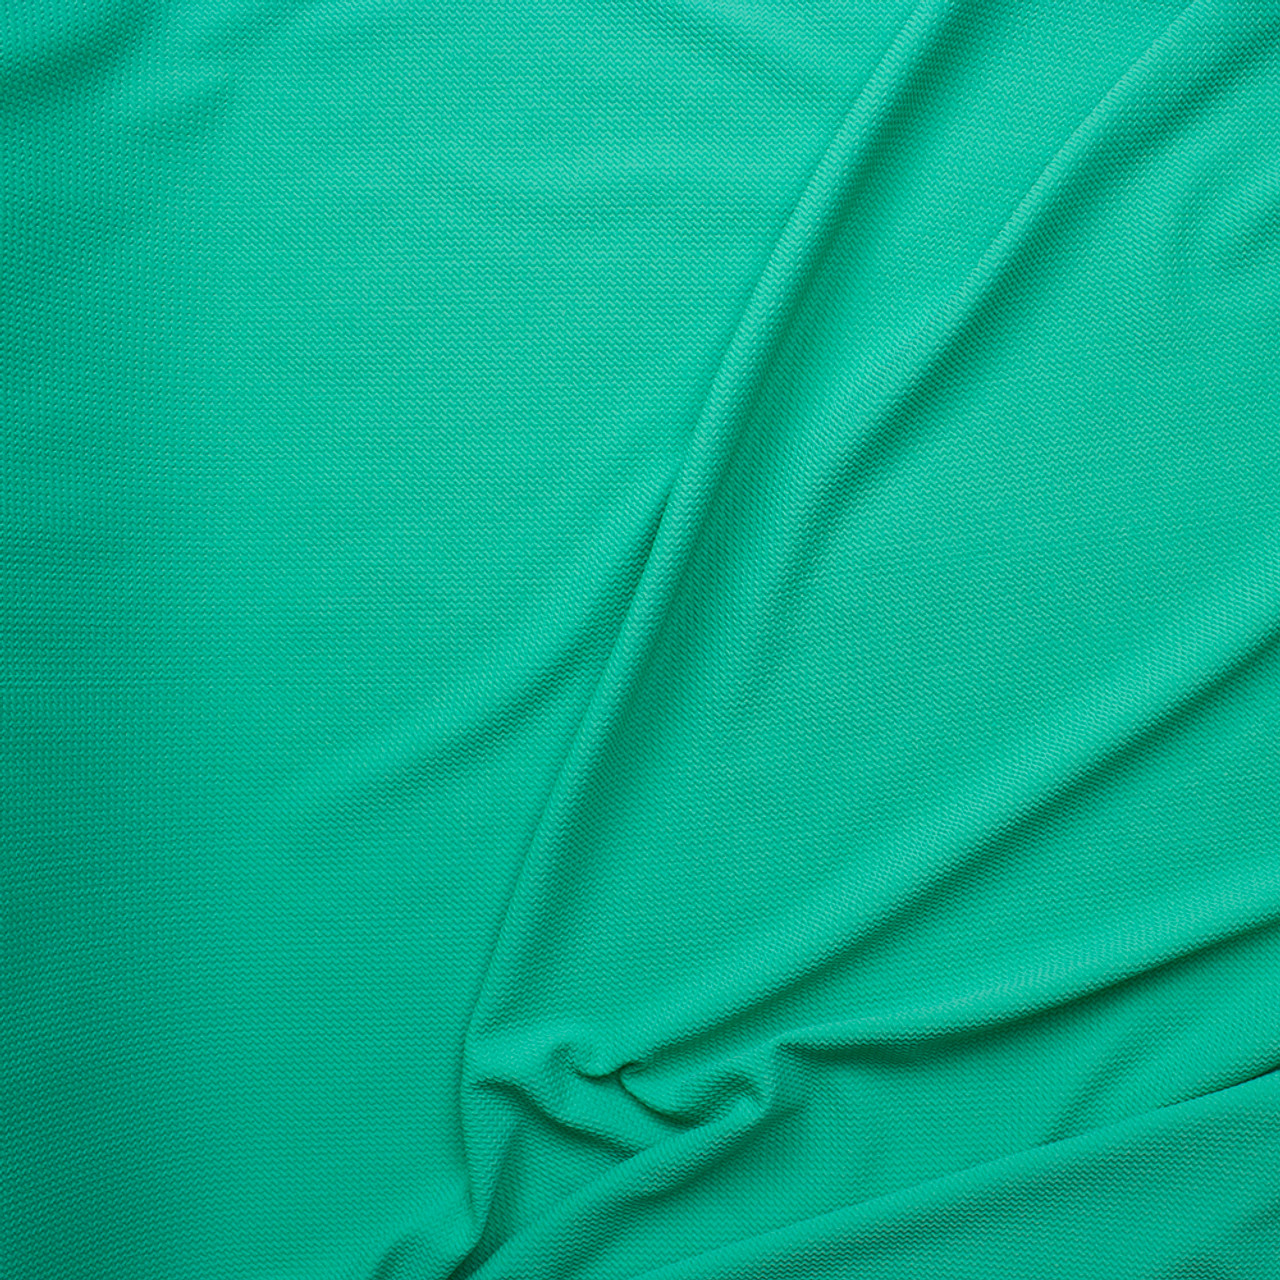 7a8ef502df ... Solid Spearmint Bullet Textured Liverpool Knit Fabric By The Yard -  Wide shot